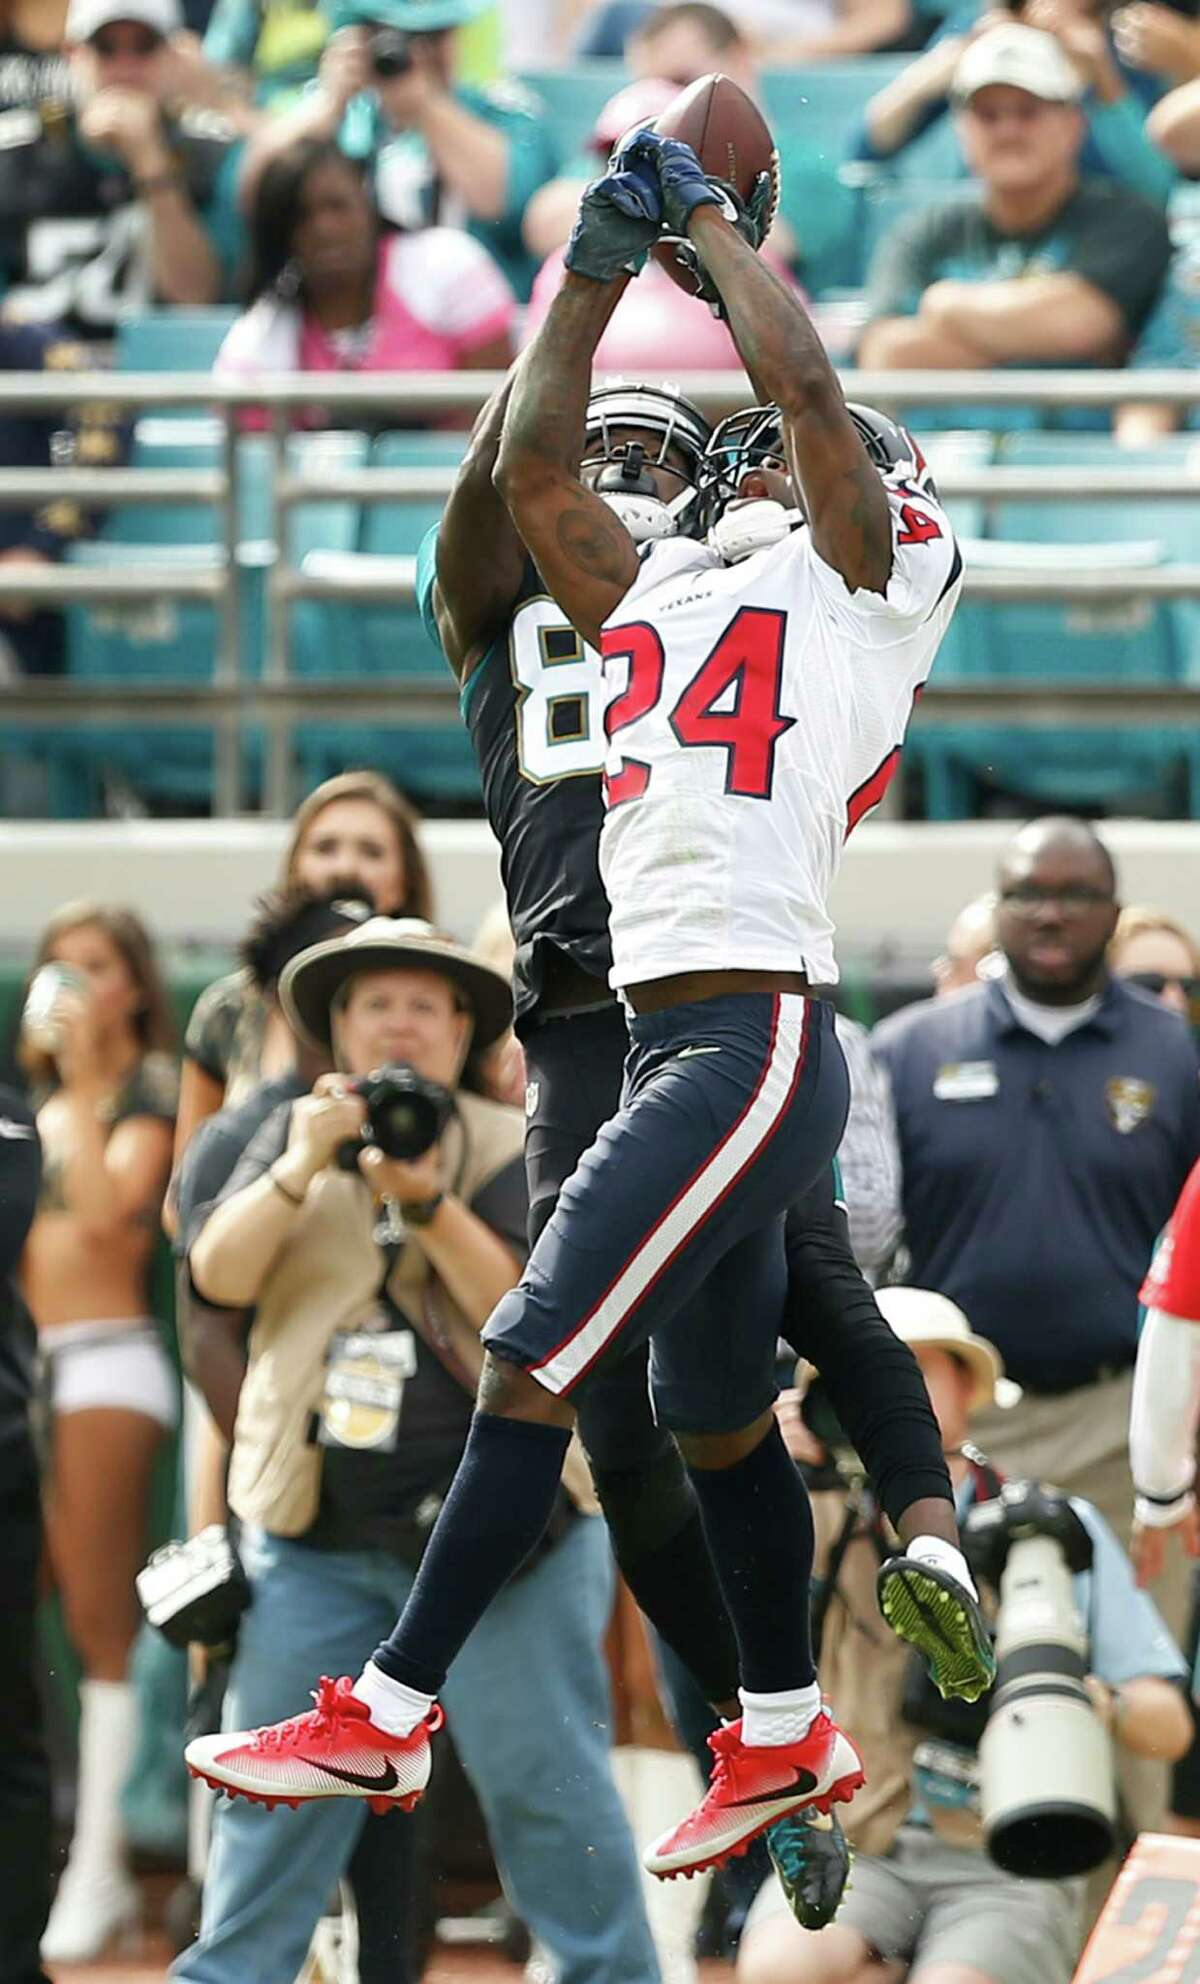 Houston Texans cornerback Johnathan Joseph (24) breaks up a pass intended for Jacksonville Jaguars wide receiver Allen Hurns (88) during the first quarter of an NFL football game at Everbank Field on Sunday, Nov. 13, 2016, in Jacksonville.